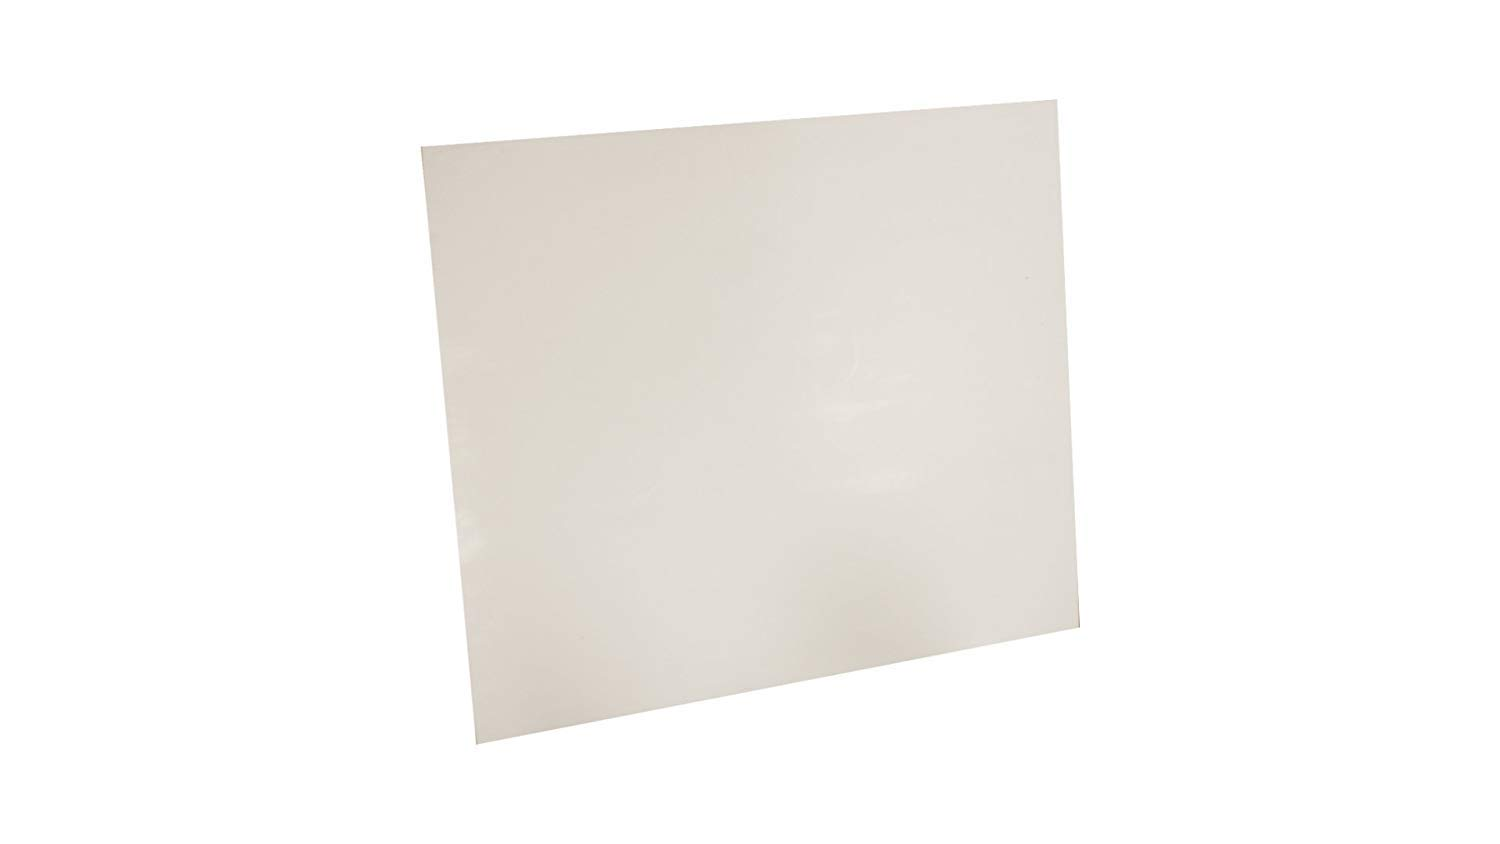 Assigned by Sterling Seal & Supply, (STCC) 7530.0312.12x12.DSC White Virgin Teflon Sheet, 12'' x 12'' Square, 1/32'' Thick by Sterling Seal & Supply (STCC) (Qty 1 Sheet) - DSC